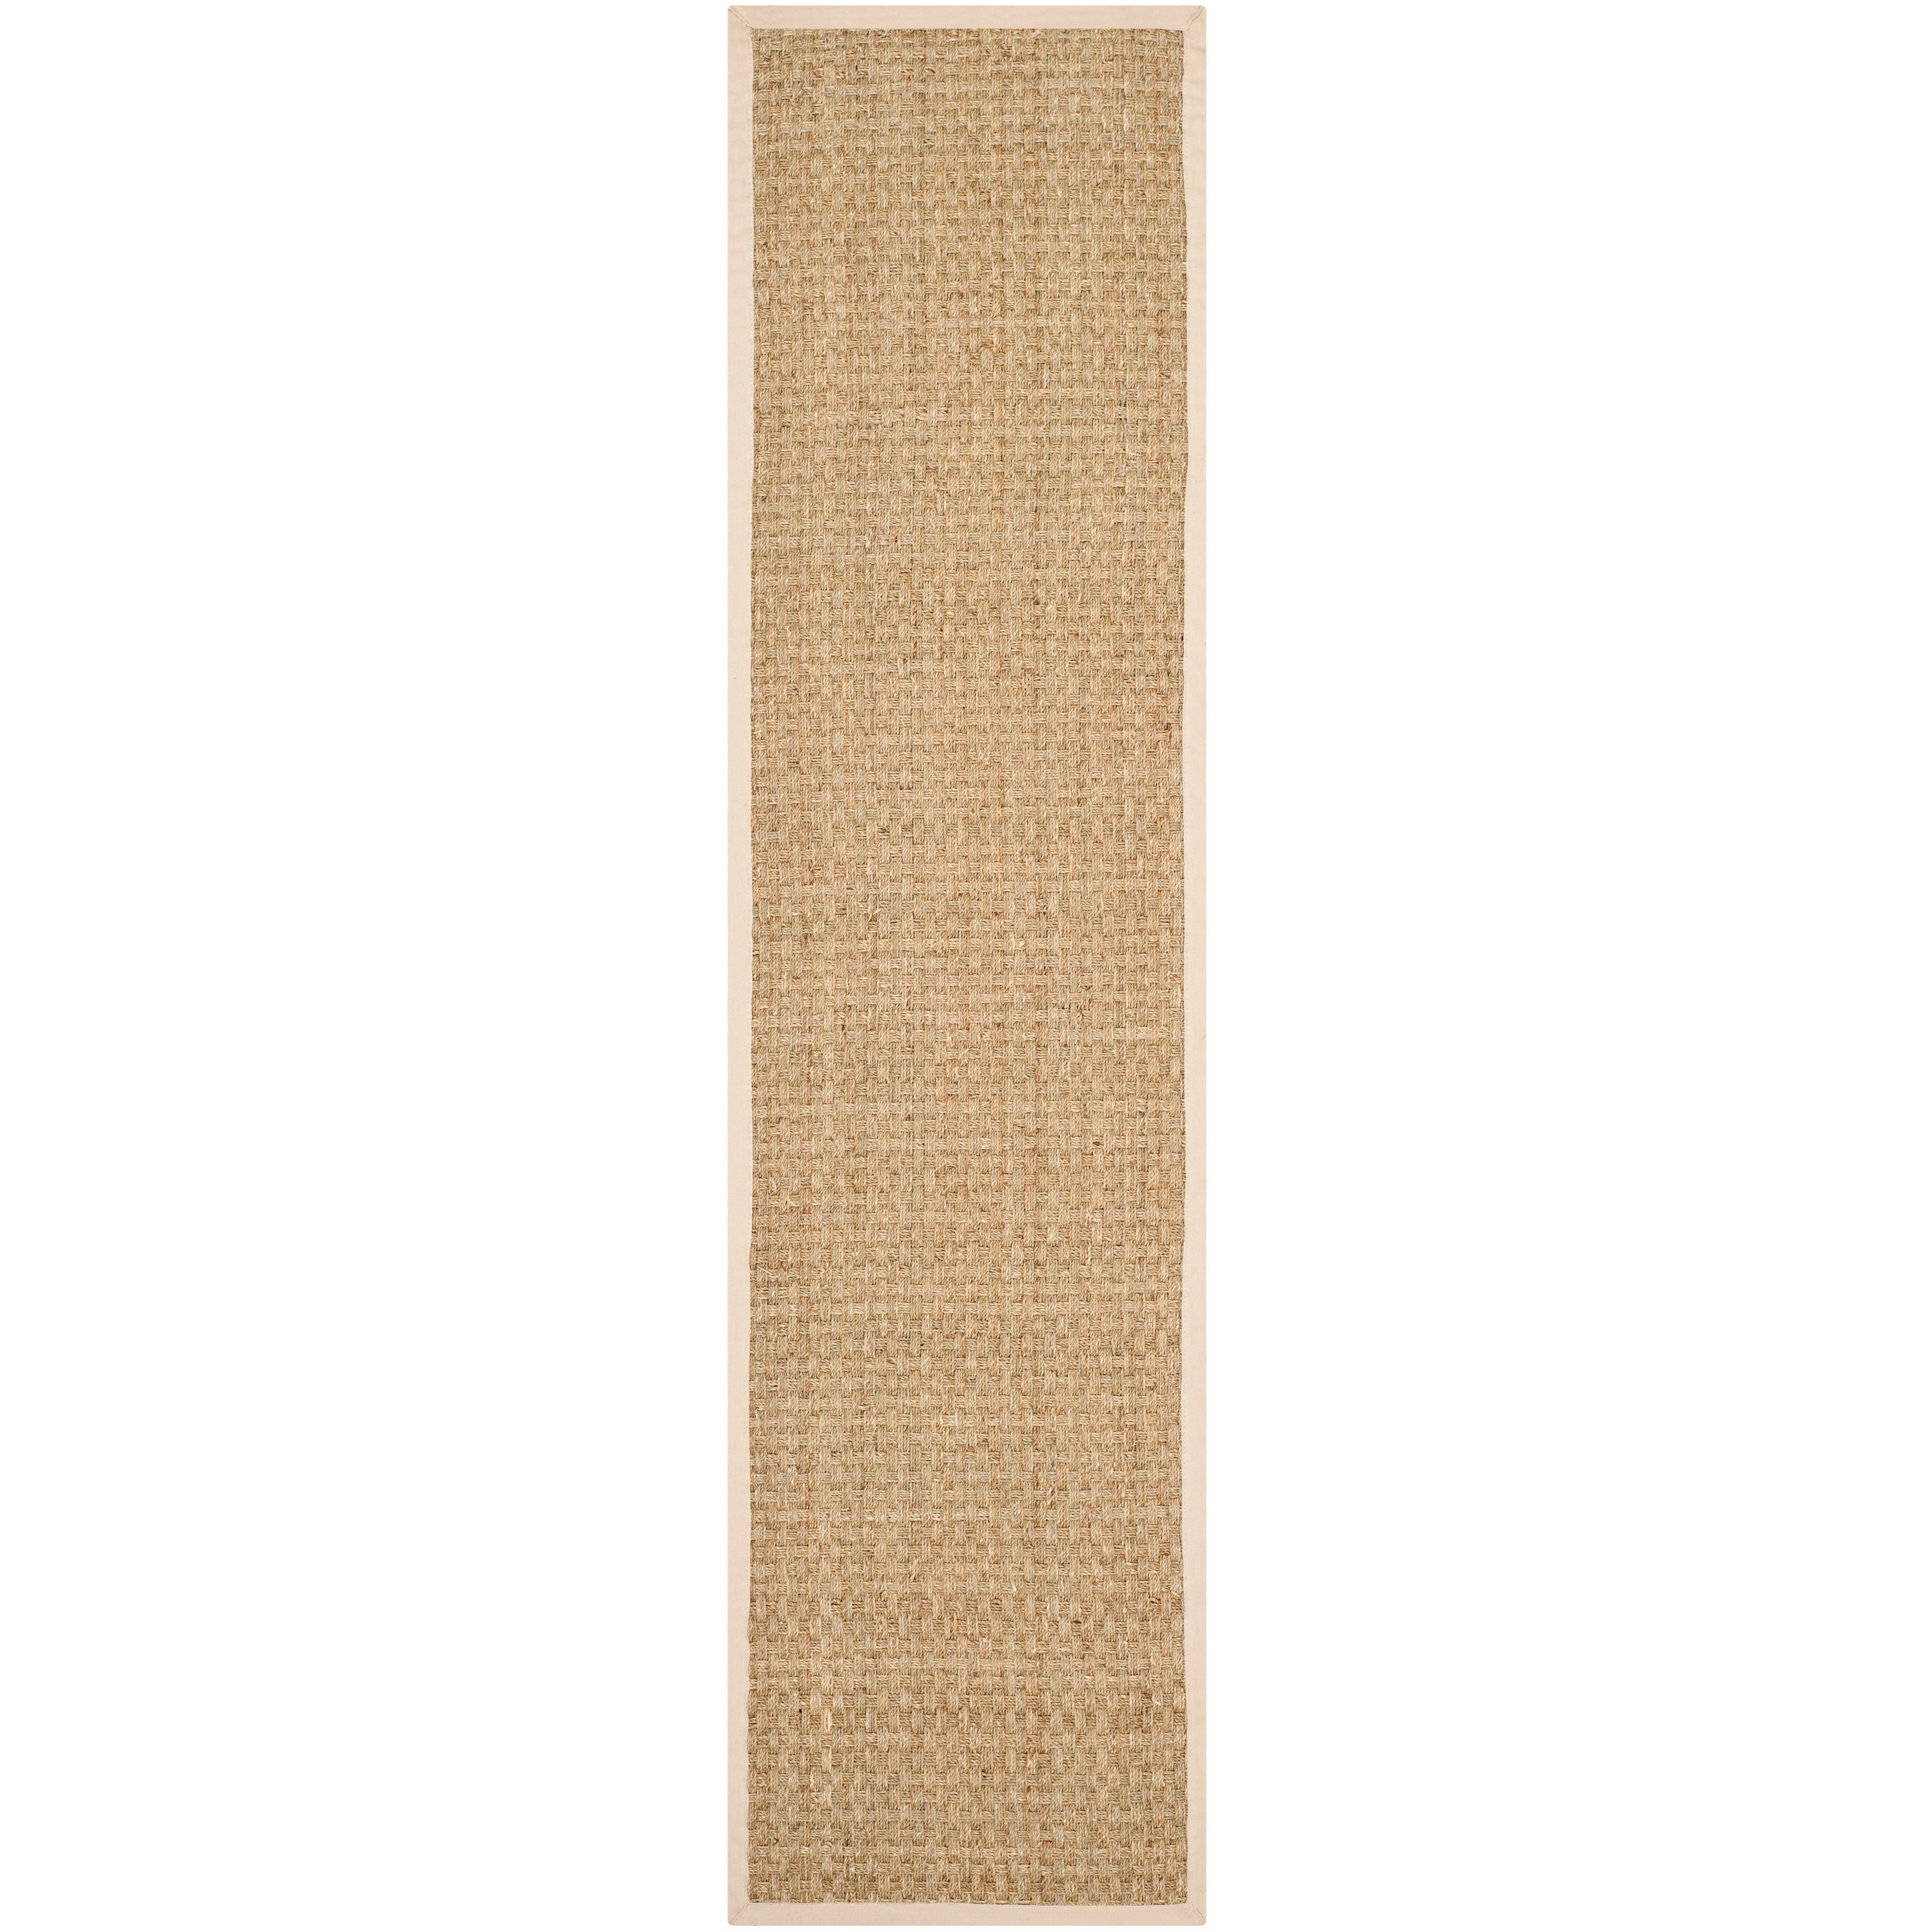 <li>Add interest to your home decor with a hand-woven runner</li> <li>Rug features a casual pattern with a natural background and beige border</li> <li>Runner is crafted of natural sea grass with 100-percent cotton canvas backing</li>